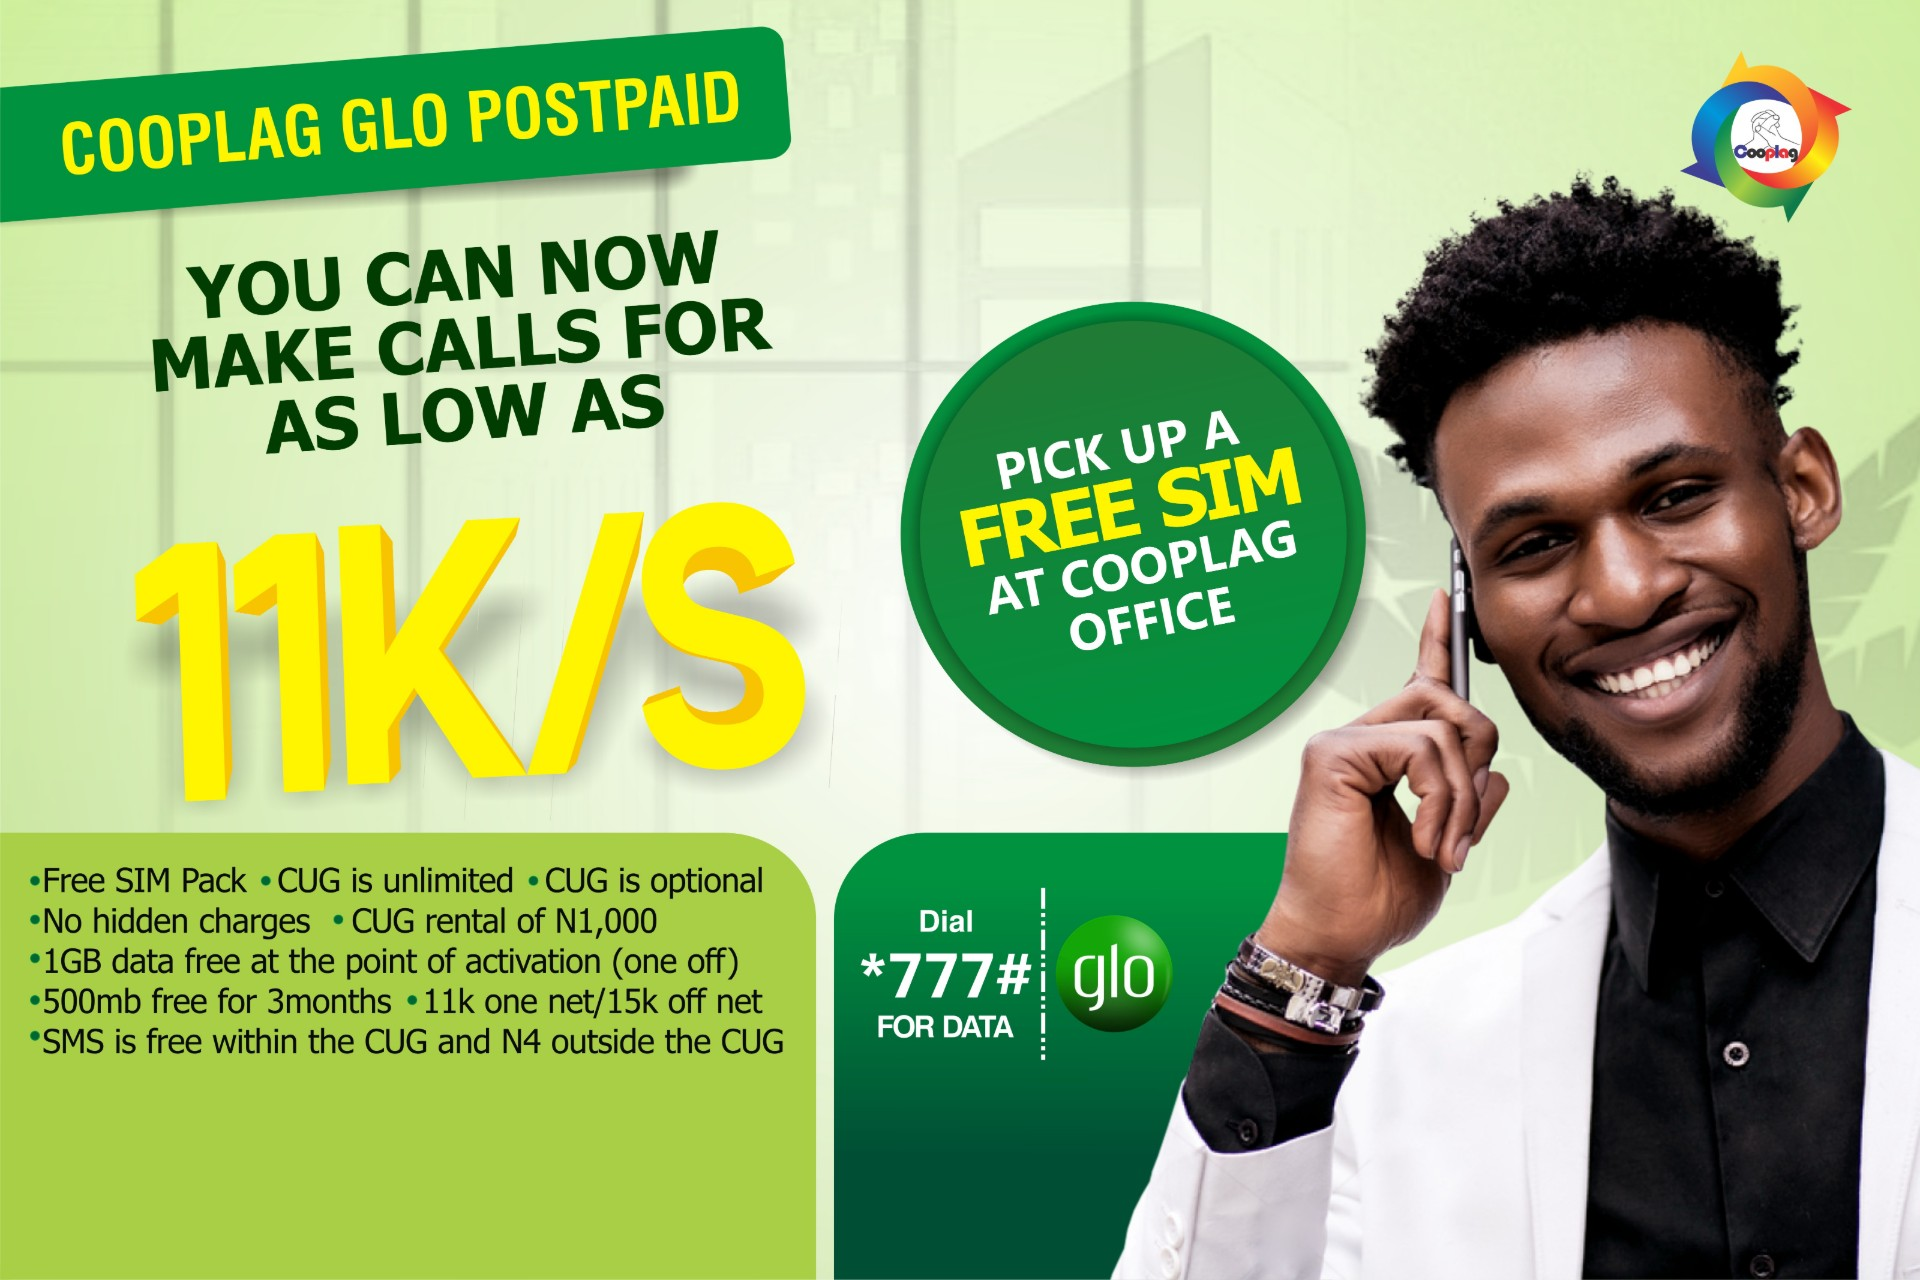 COOPLAG GLO POSTPAID